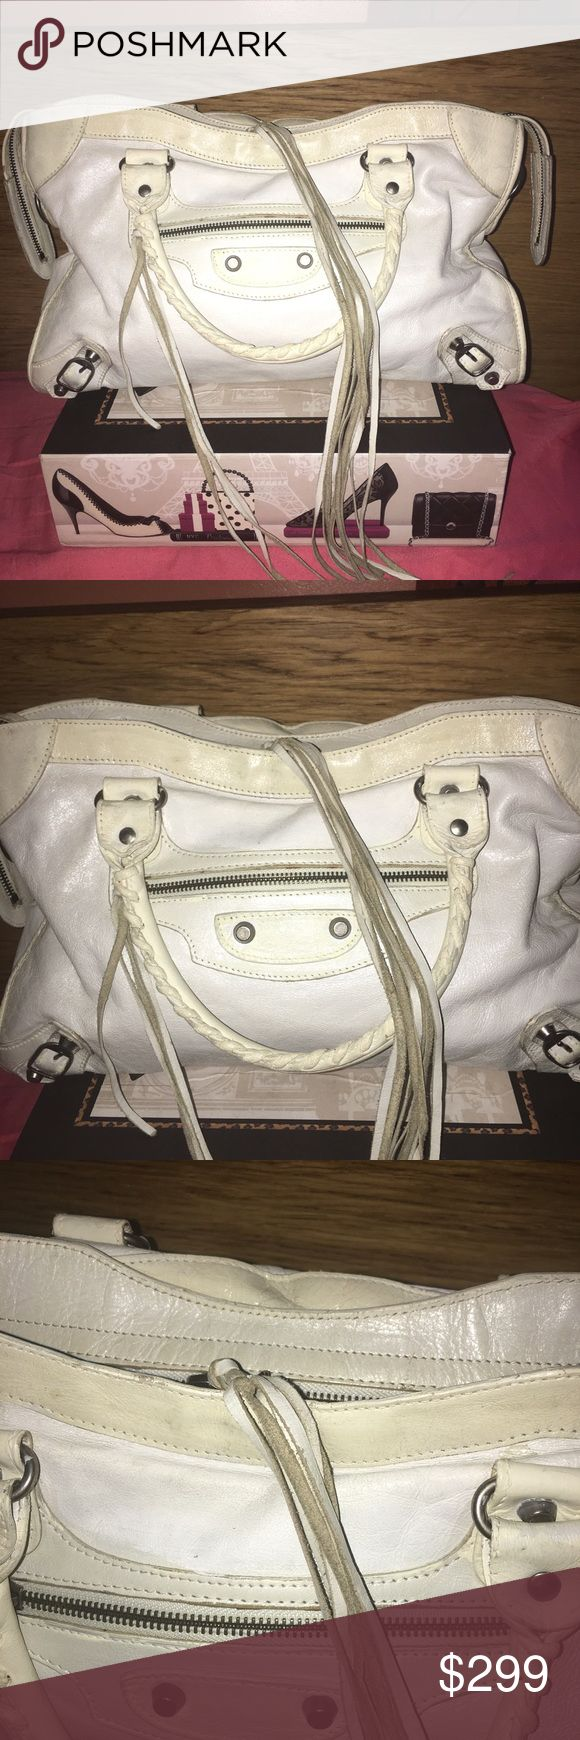 Balenciaga Classic City Shoulder Bag Classic styling. White trimmed in ivory with silver hardware. TV 600 Balenciaga Bags Shoulder Bags